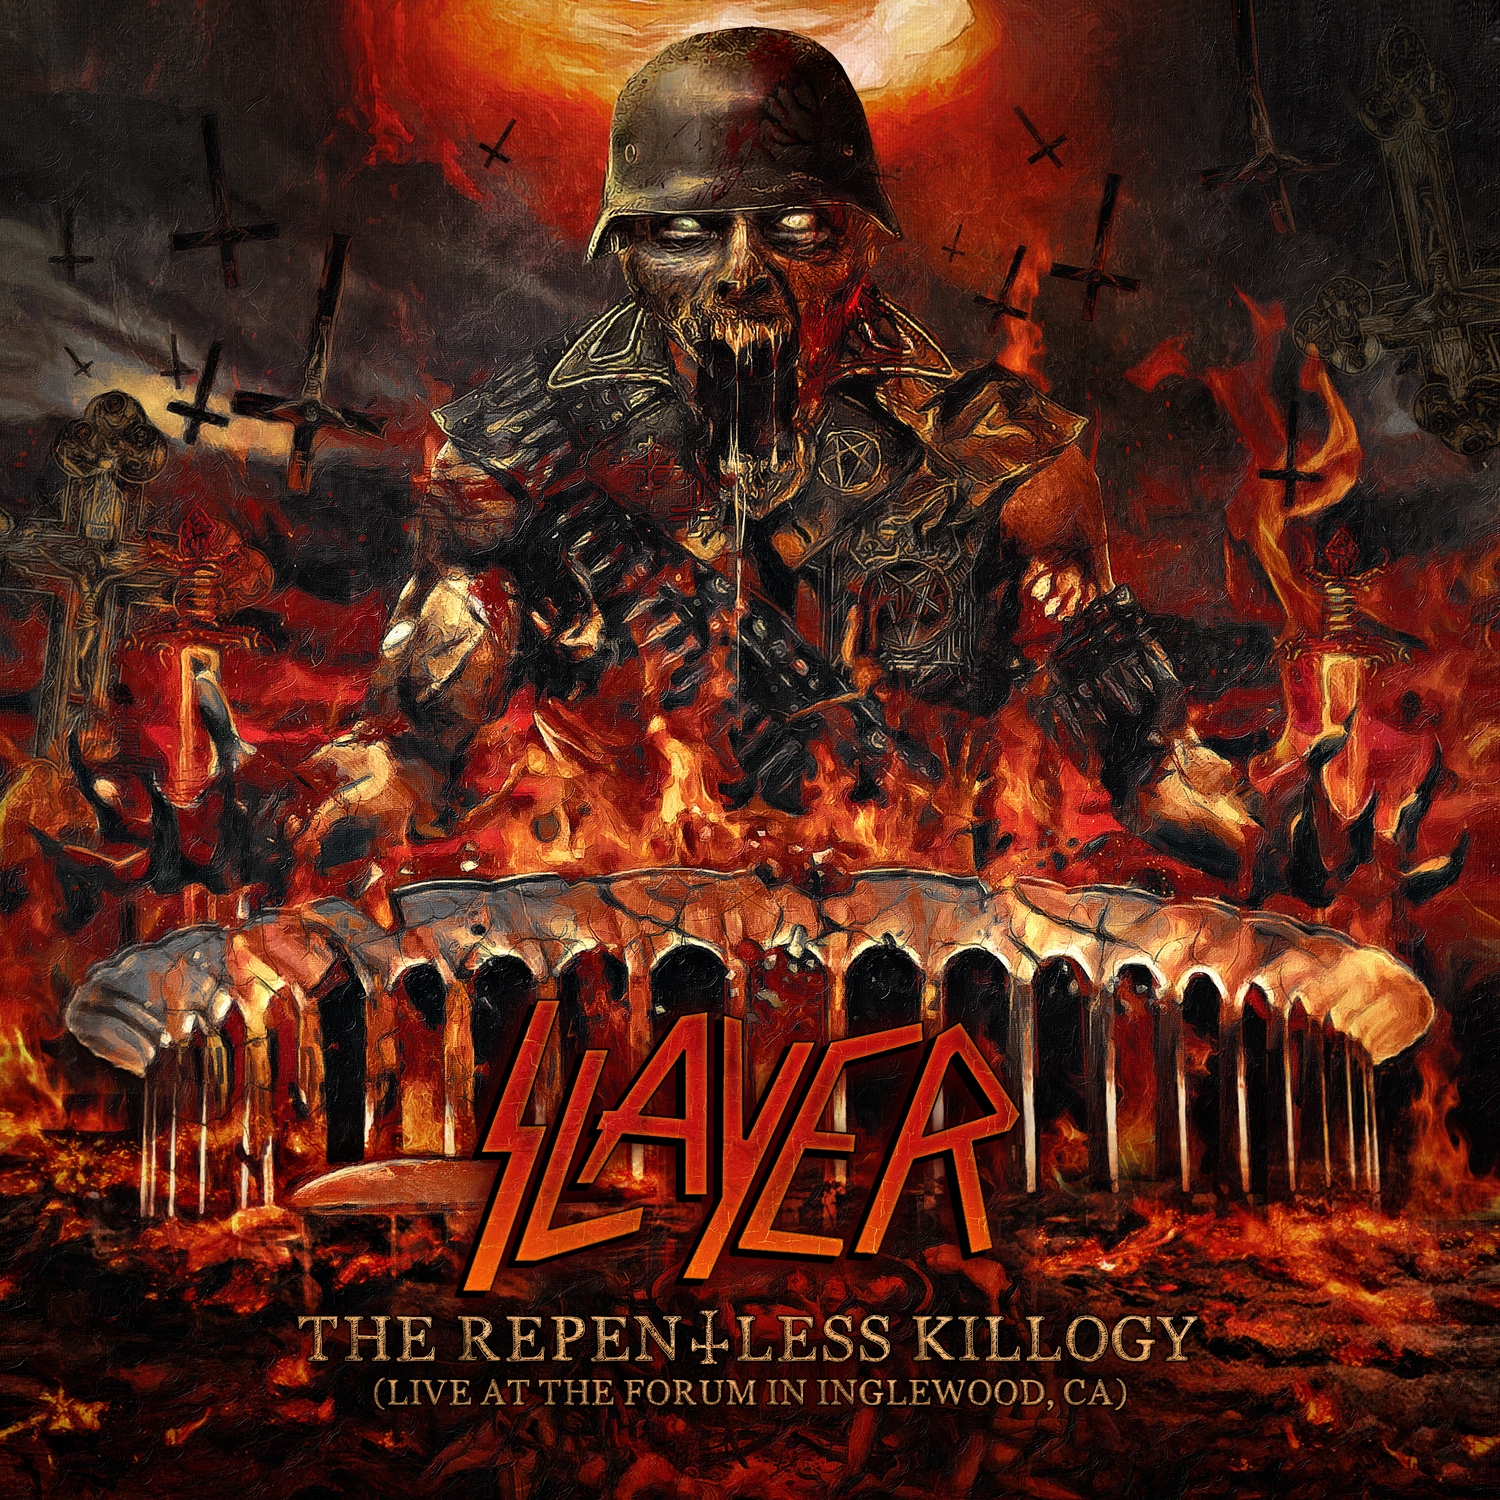 slayer-the-repentless-killogy-ein-livealbum-review